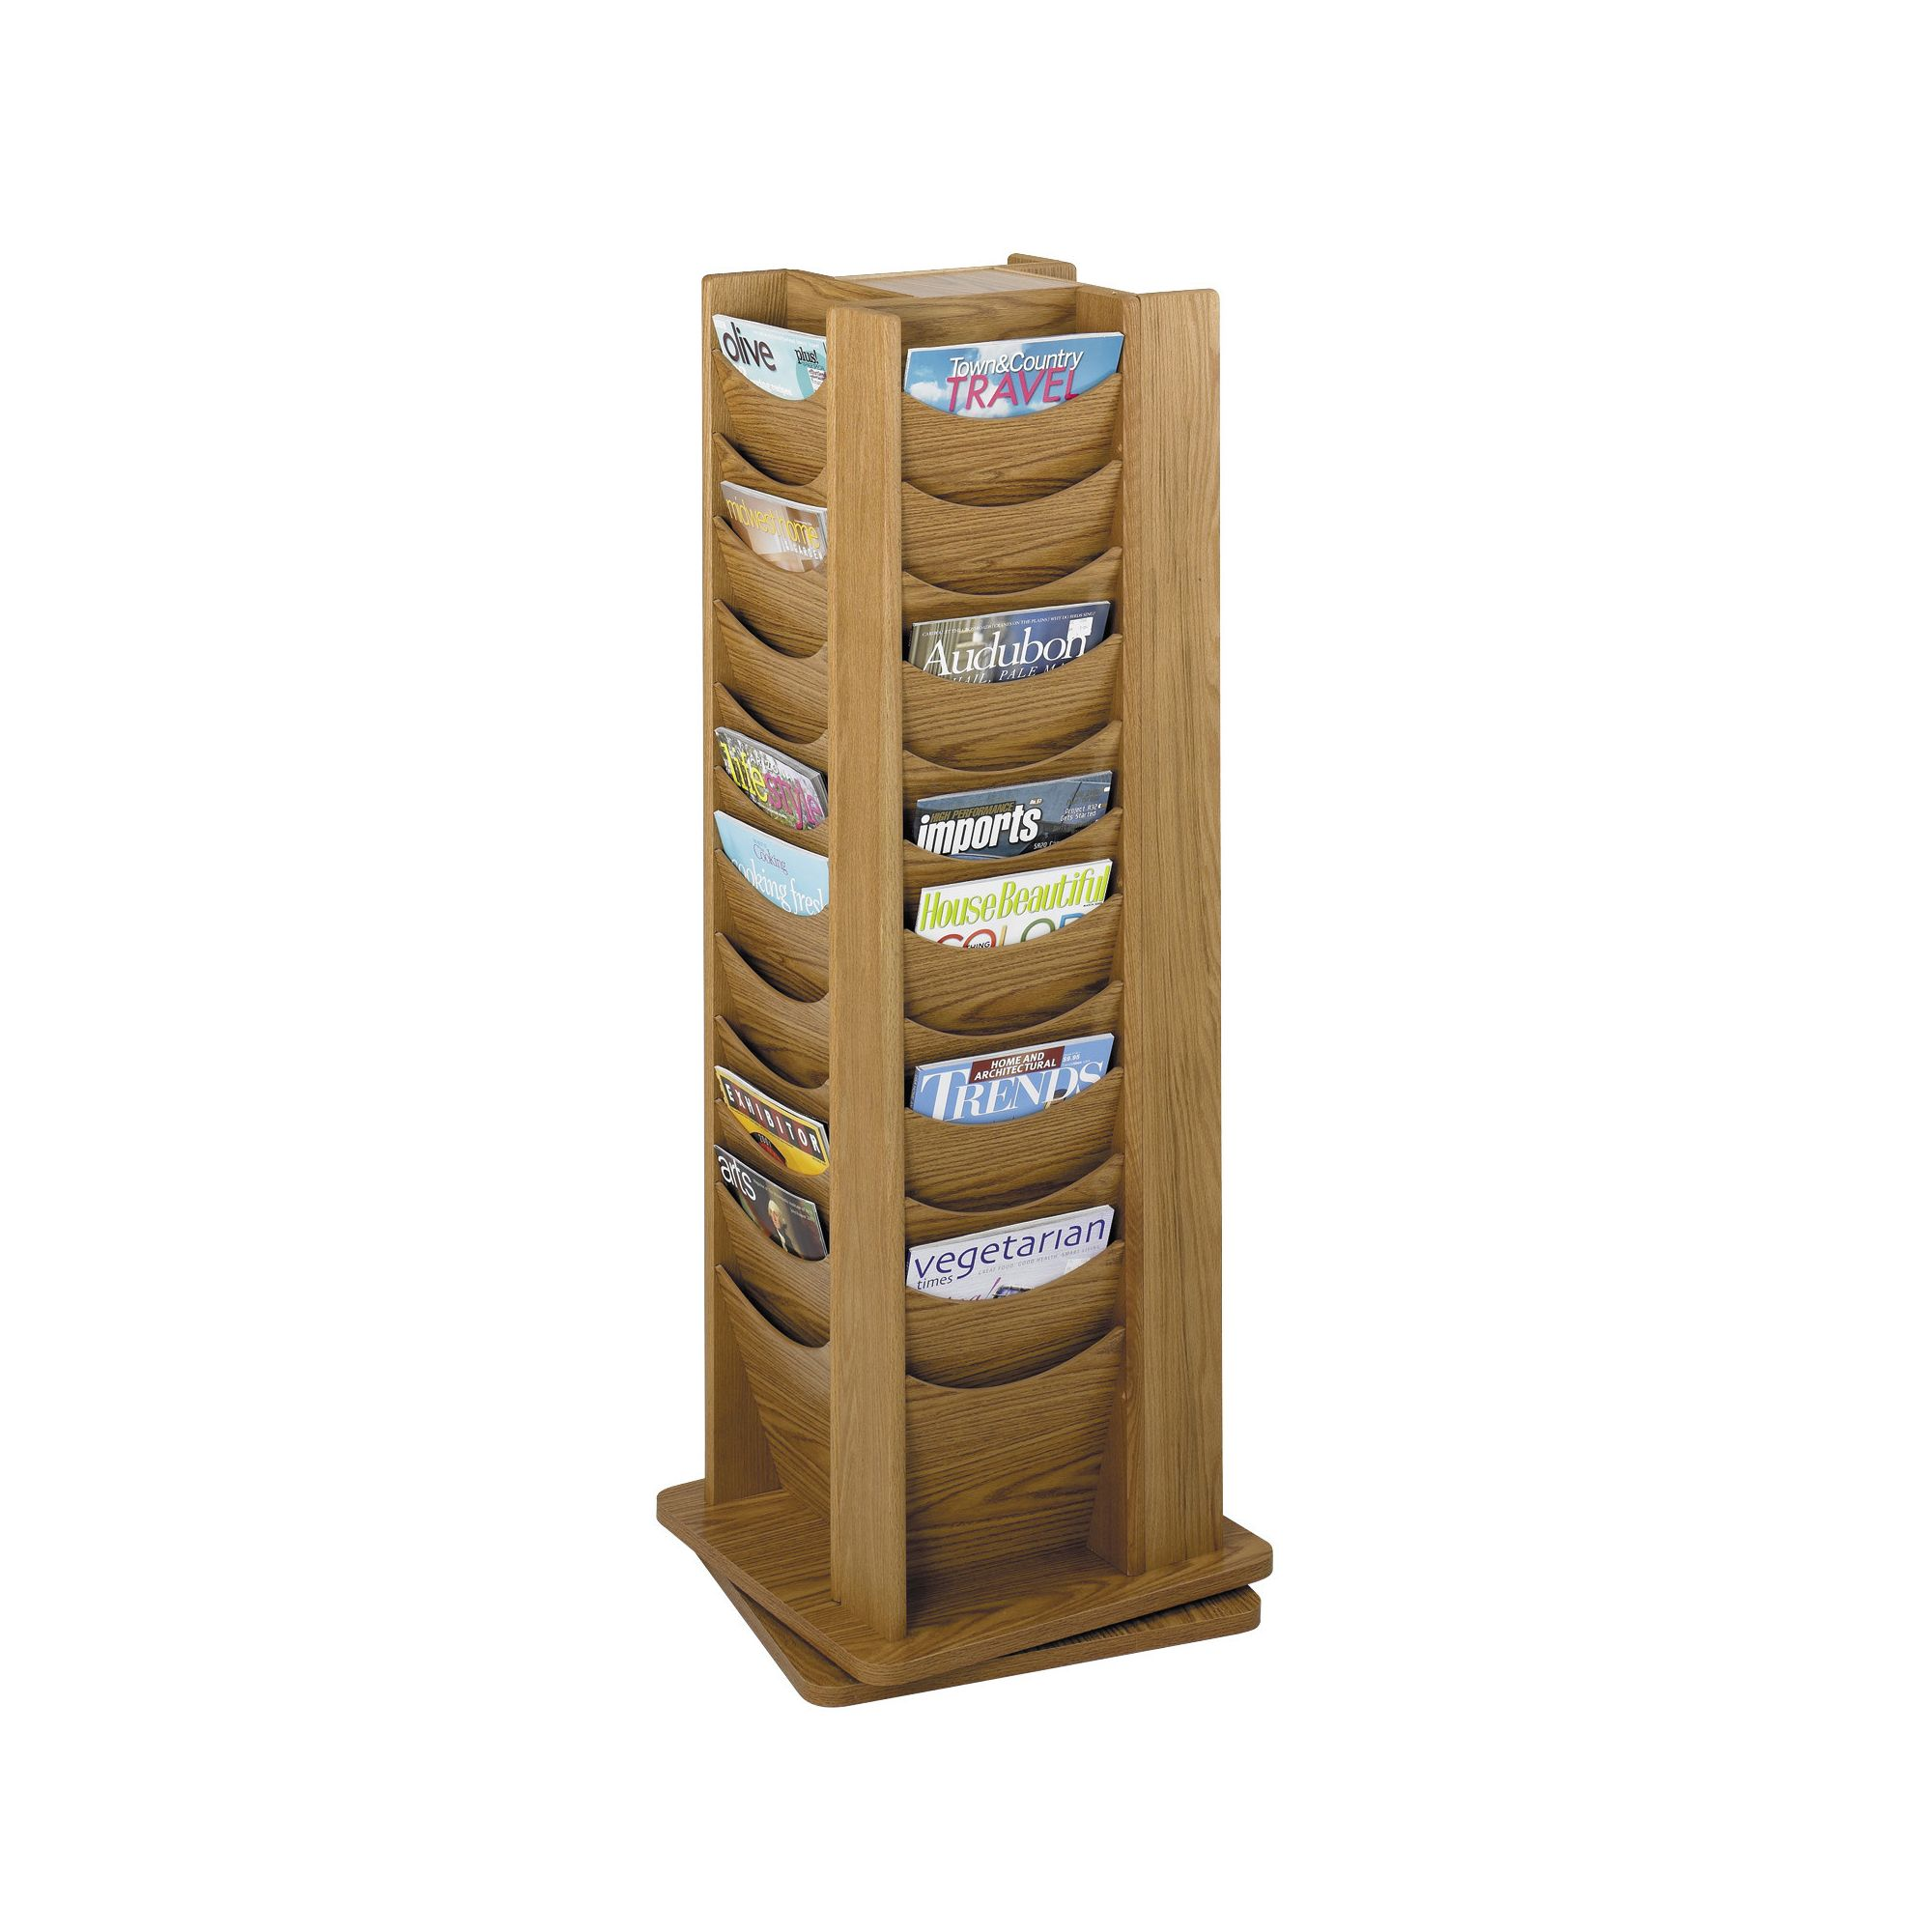 Safco Rotating Solid Wood Display Pocket in Medium Oak at Tesco Direct